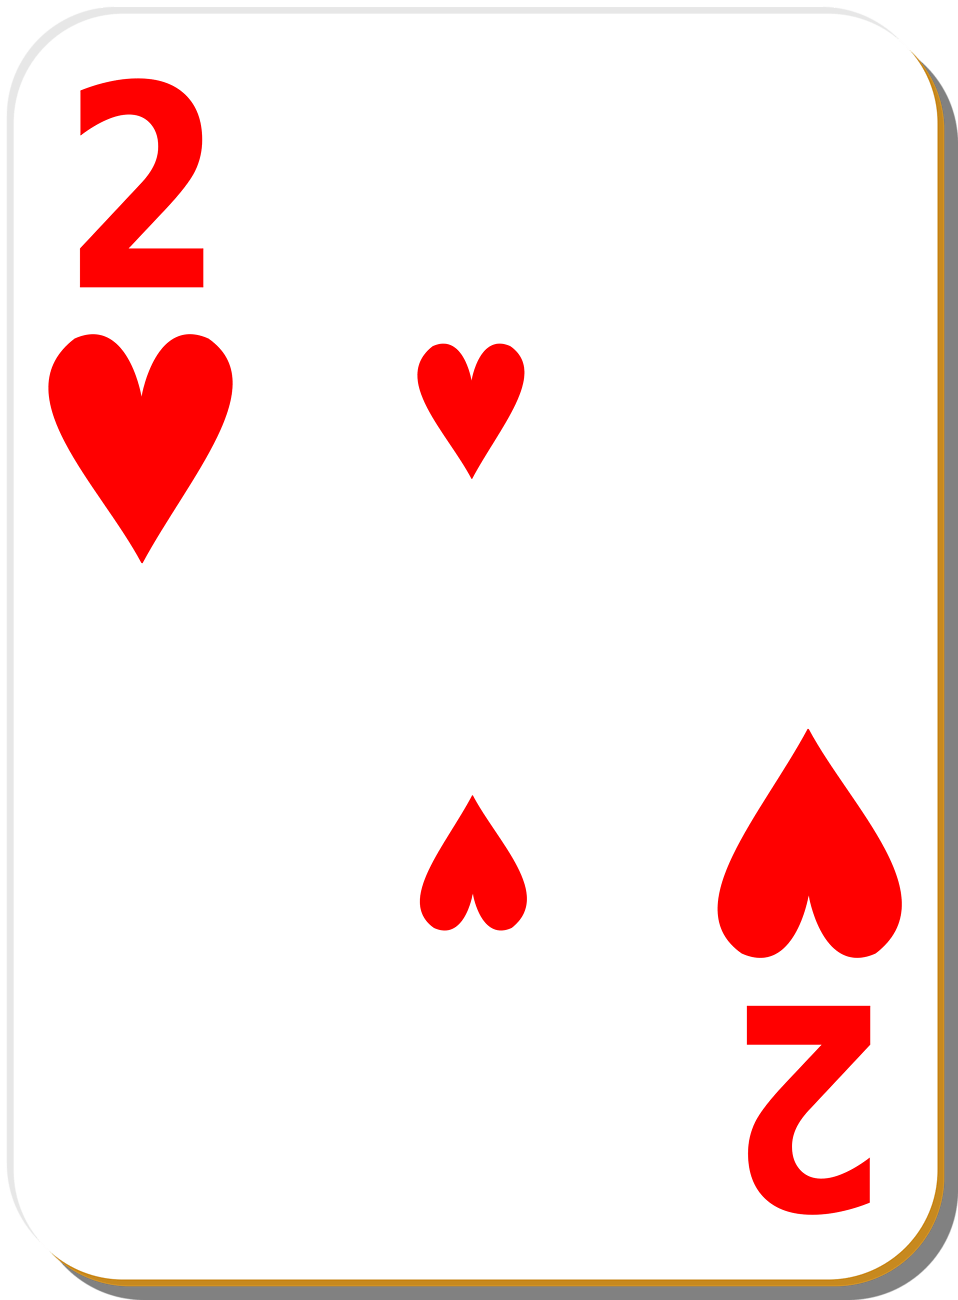 Playing Card | Free Stock Photo | Illustration of a Two of ... (958 x 1300 Pixel)